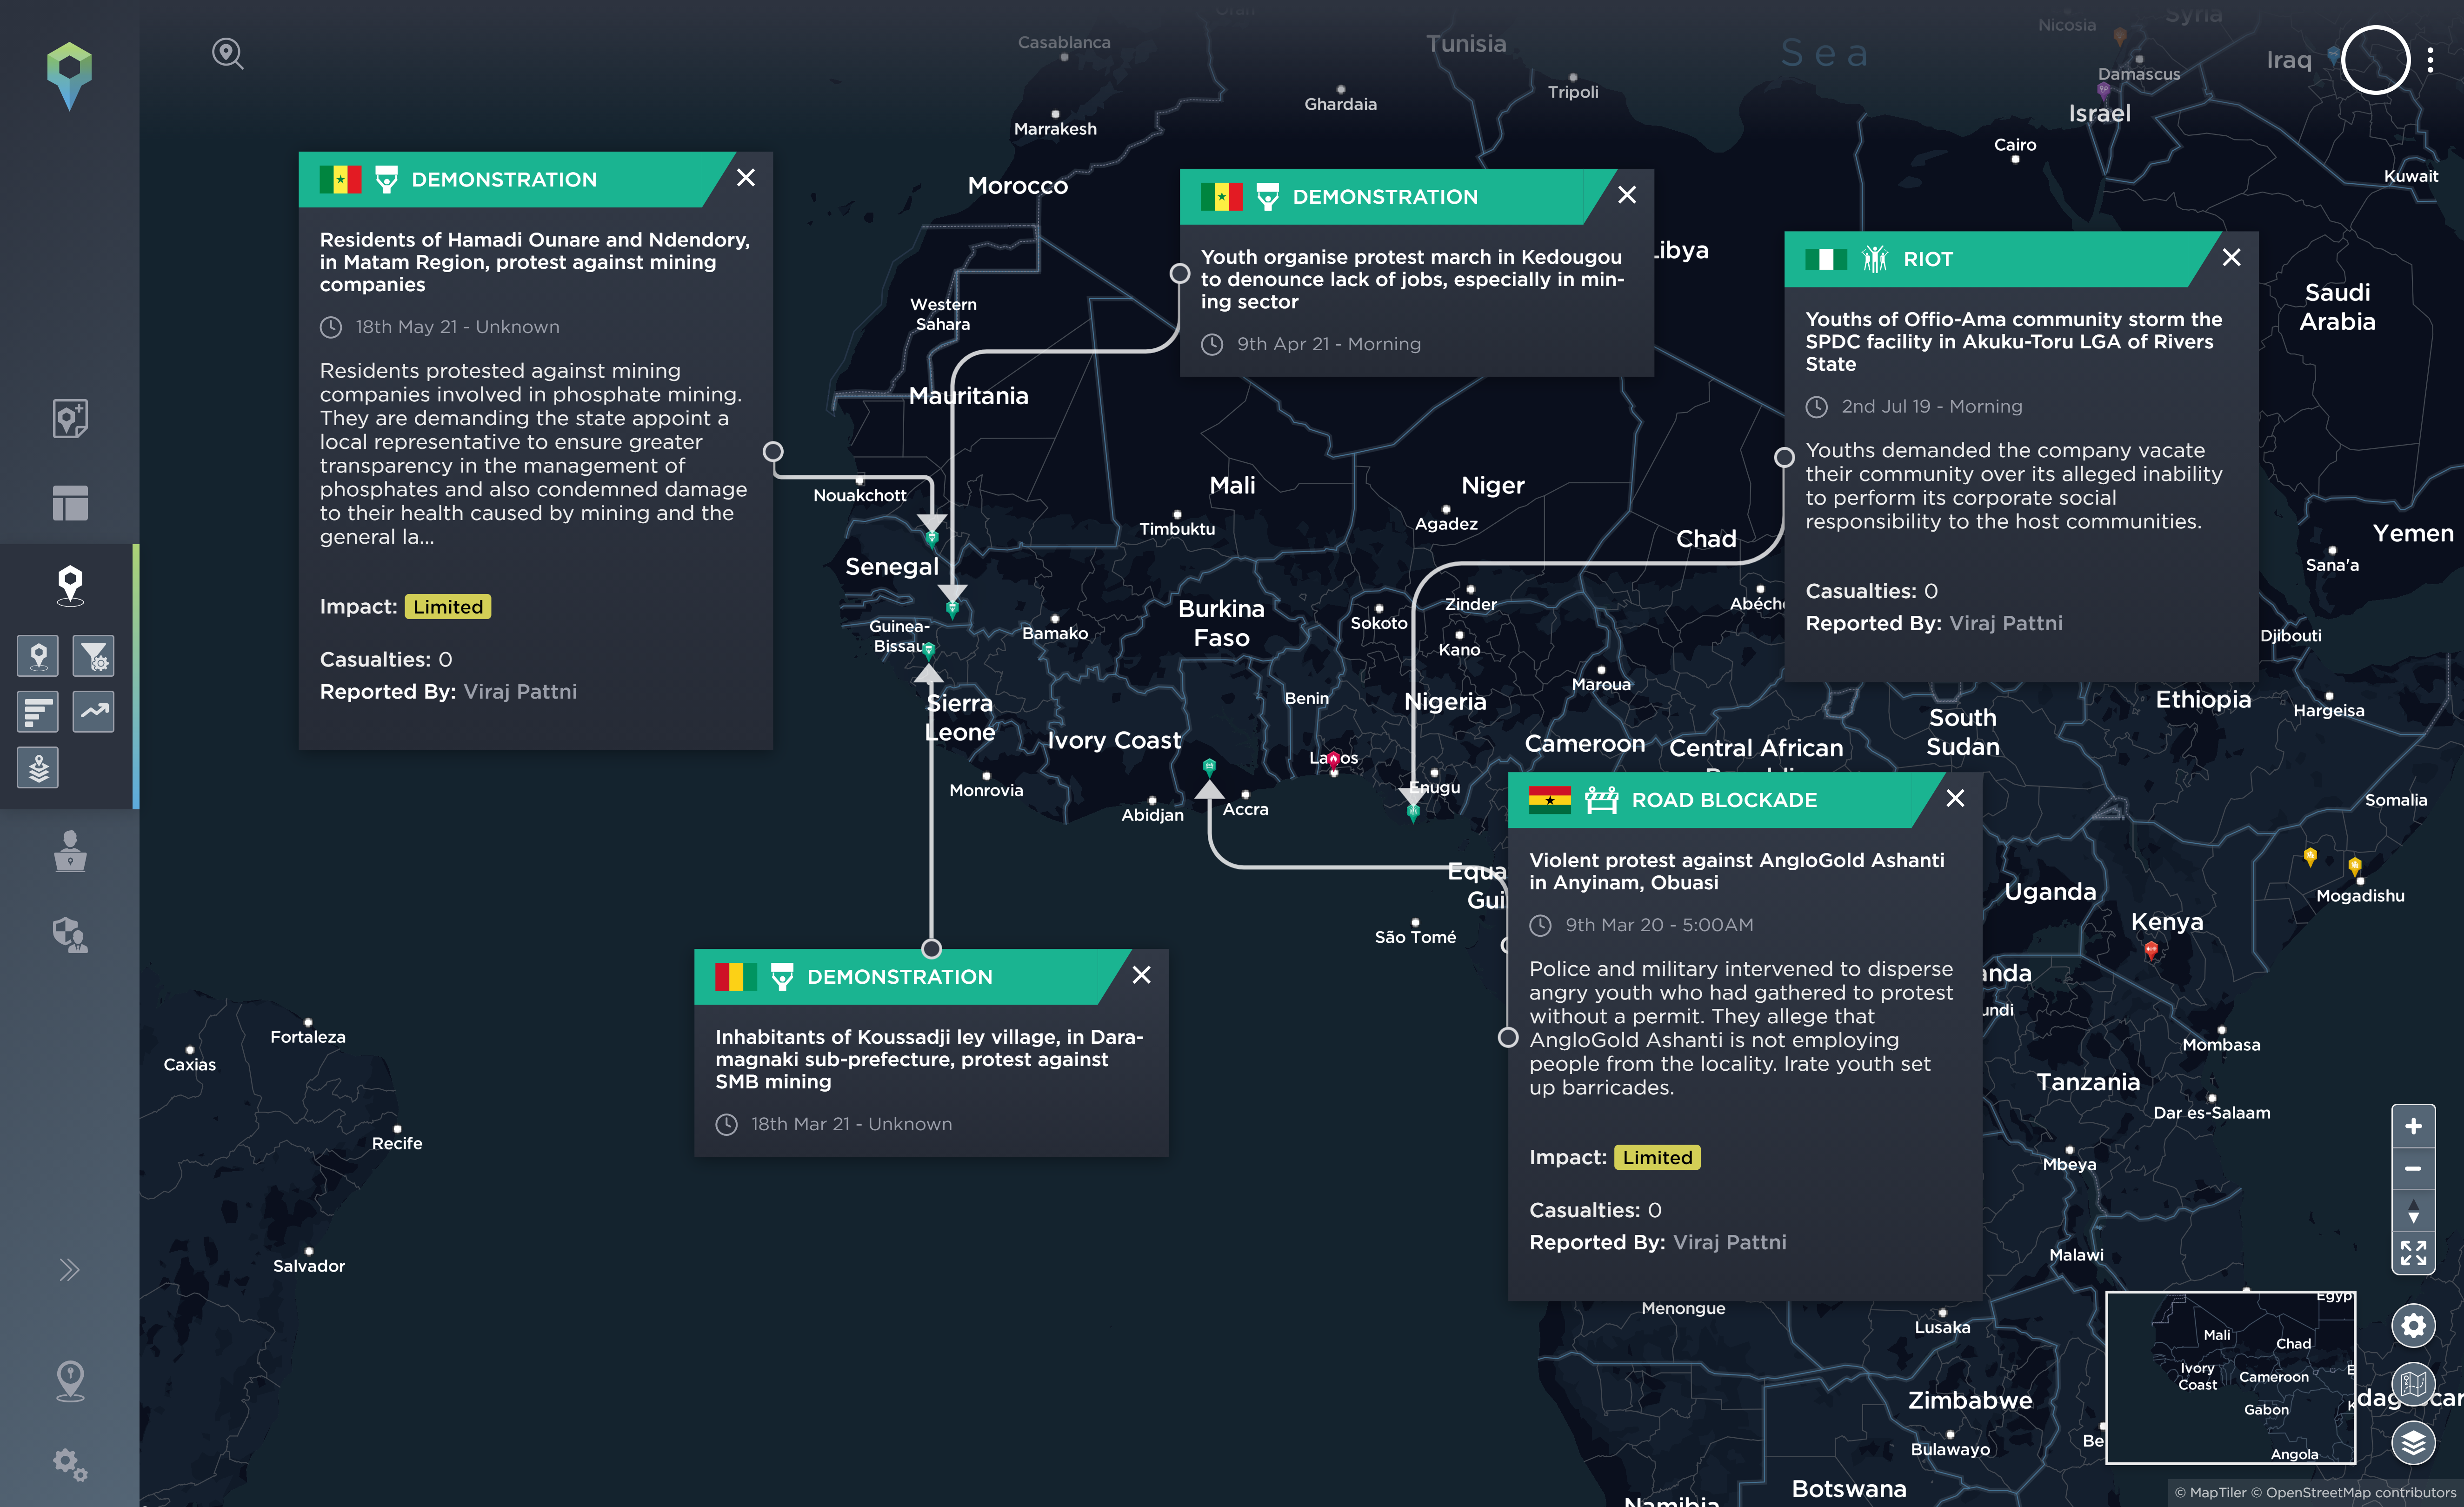 A map highlighting incidents of protest against mining and energy companies in West Africa in 2021